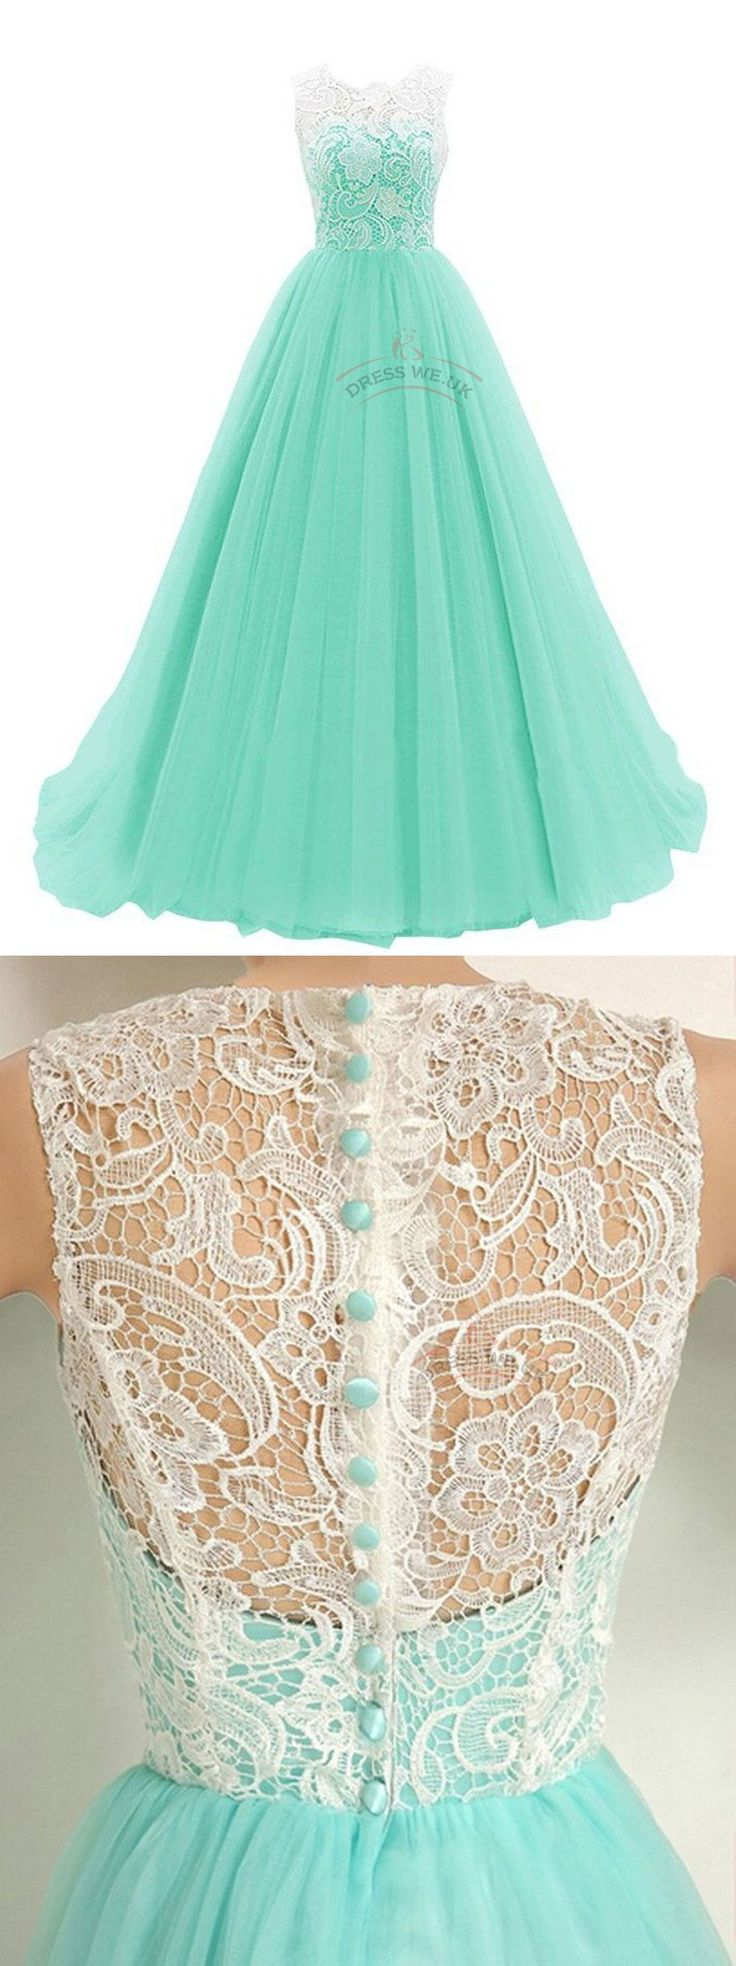 best dresses images on pinterest ball gown casual wear and